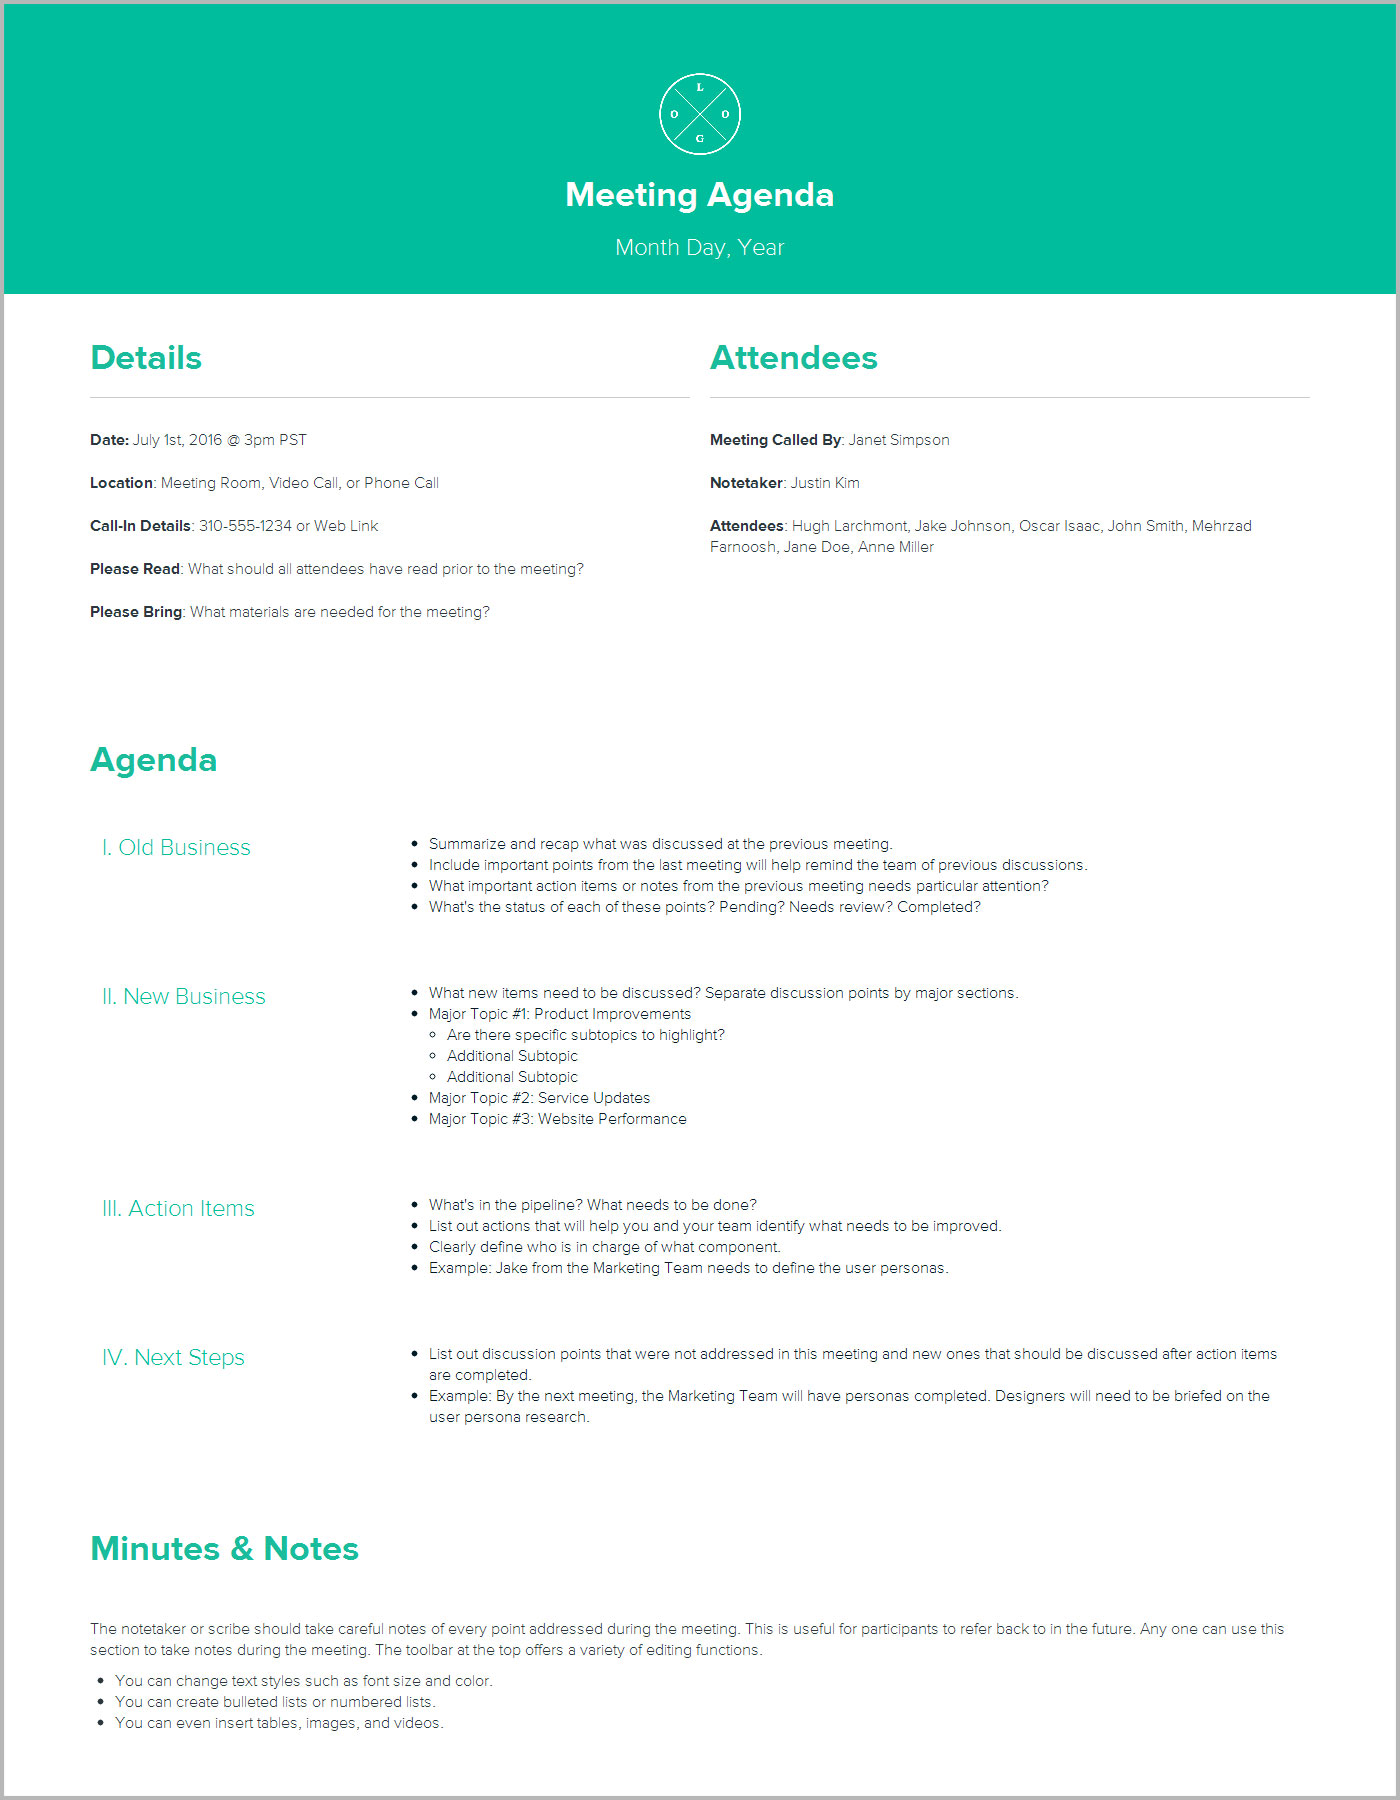 Wonderful Meeting Agenda Template By Xtensio Regarding Agenda Creator